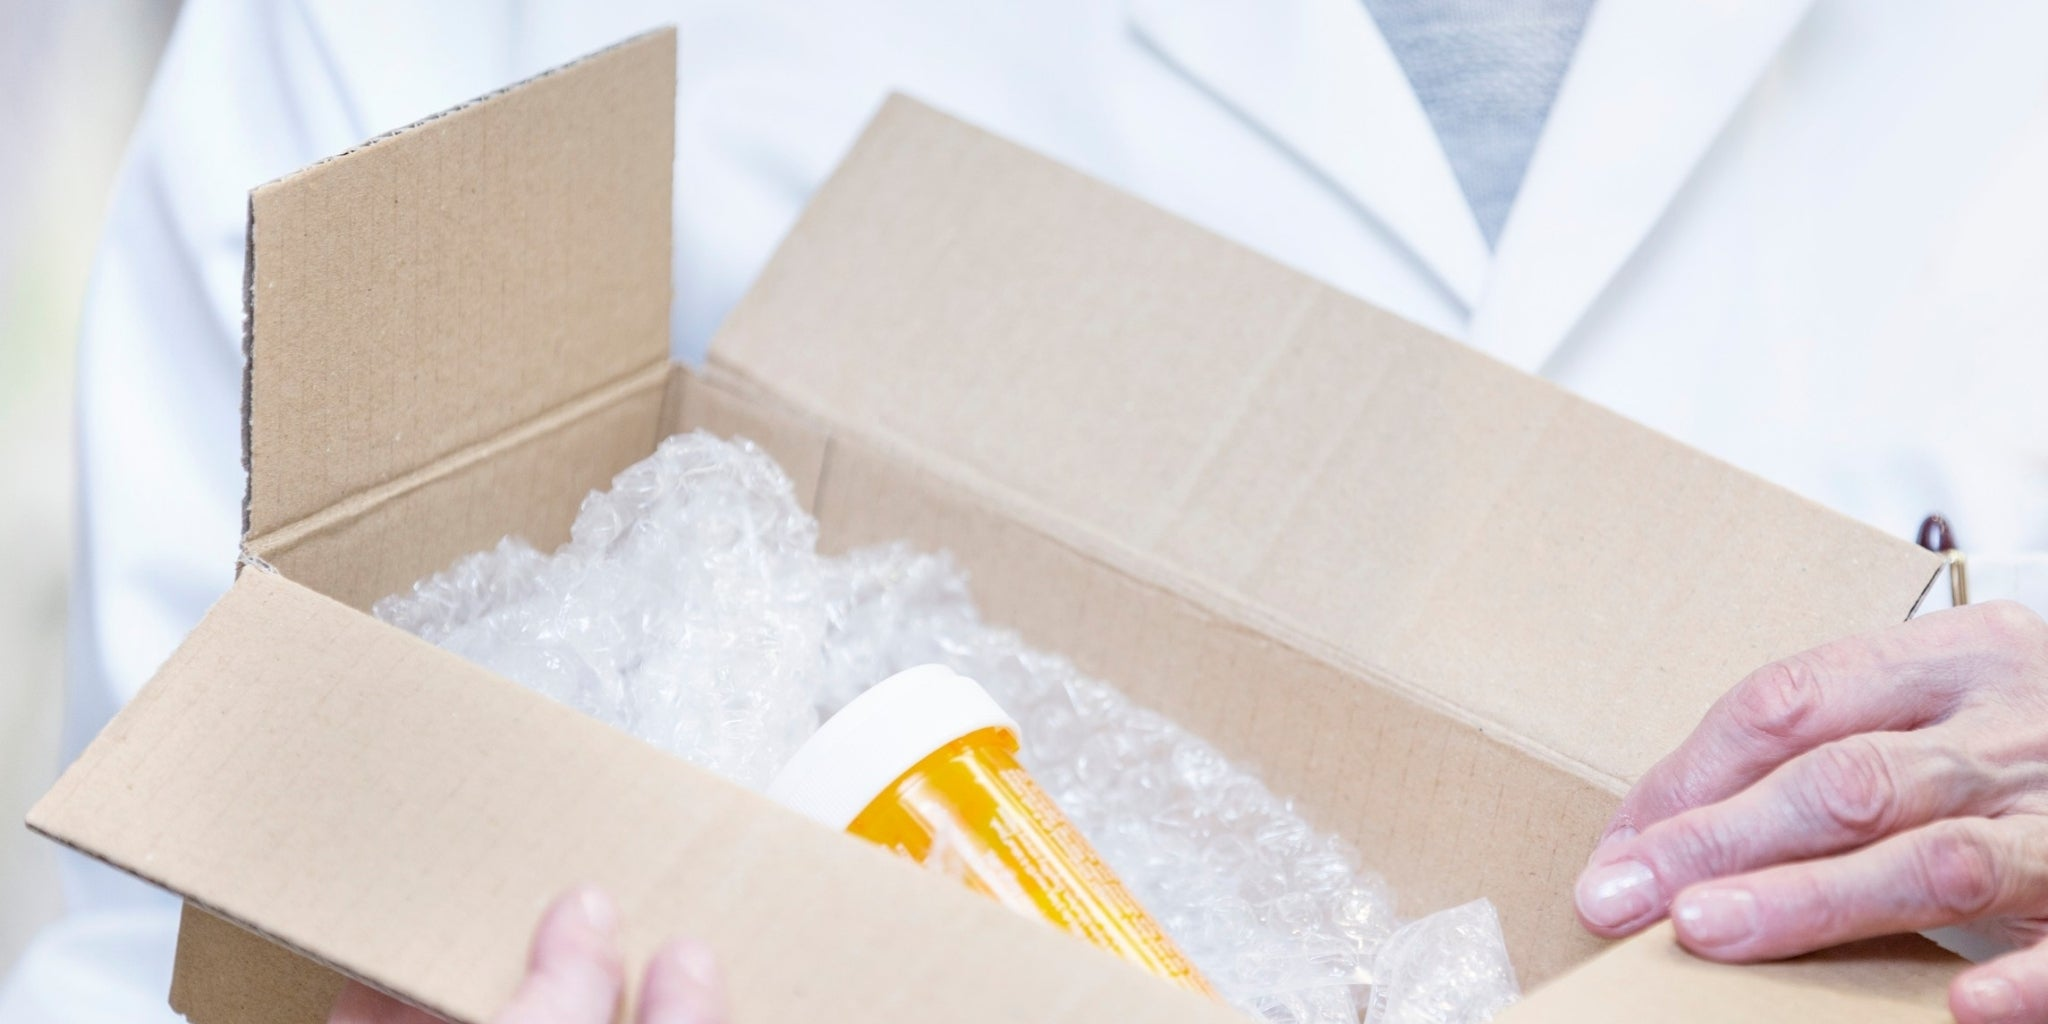 Pharmacy with next day Delivery in the UK